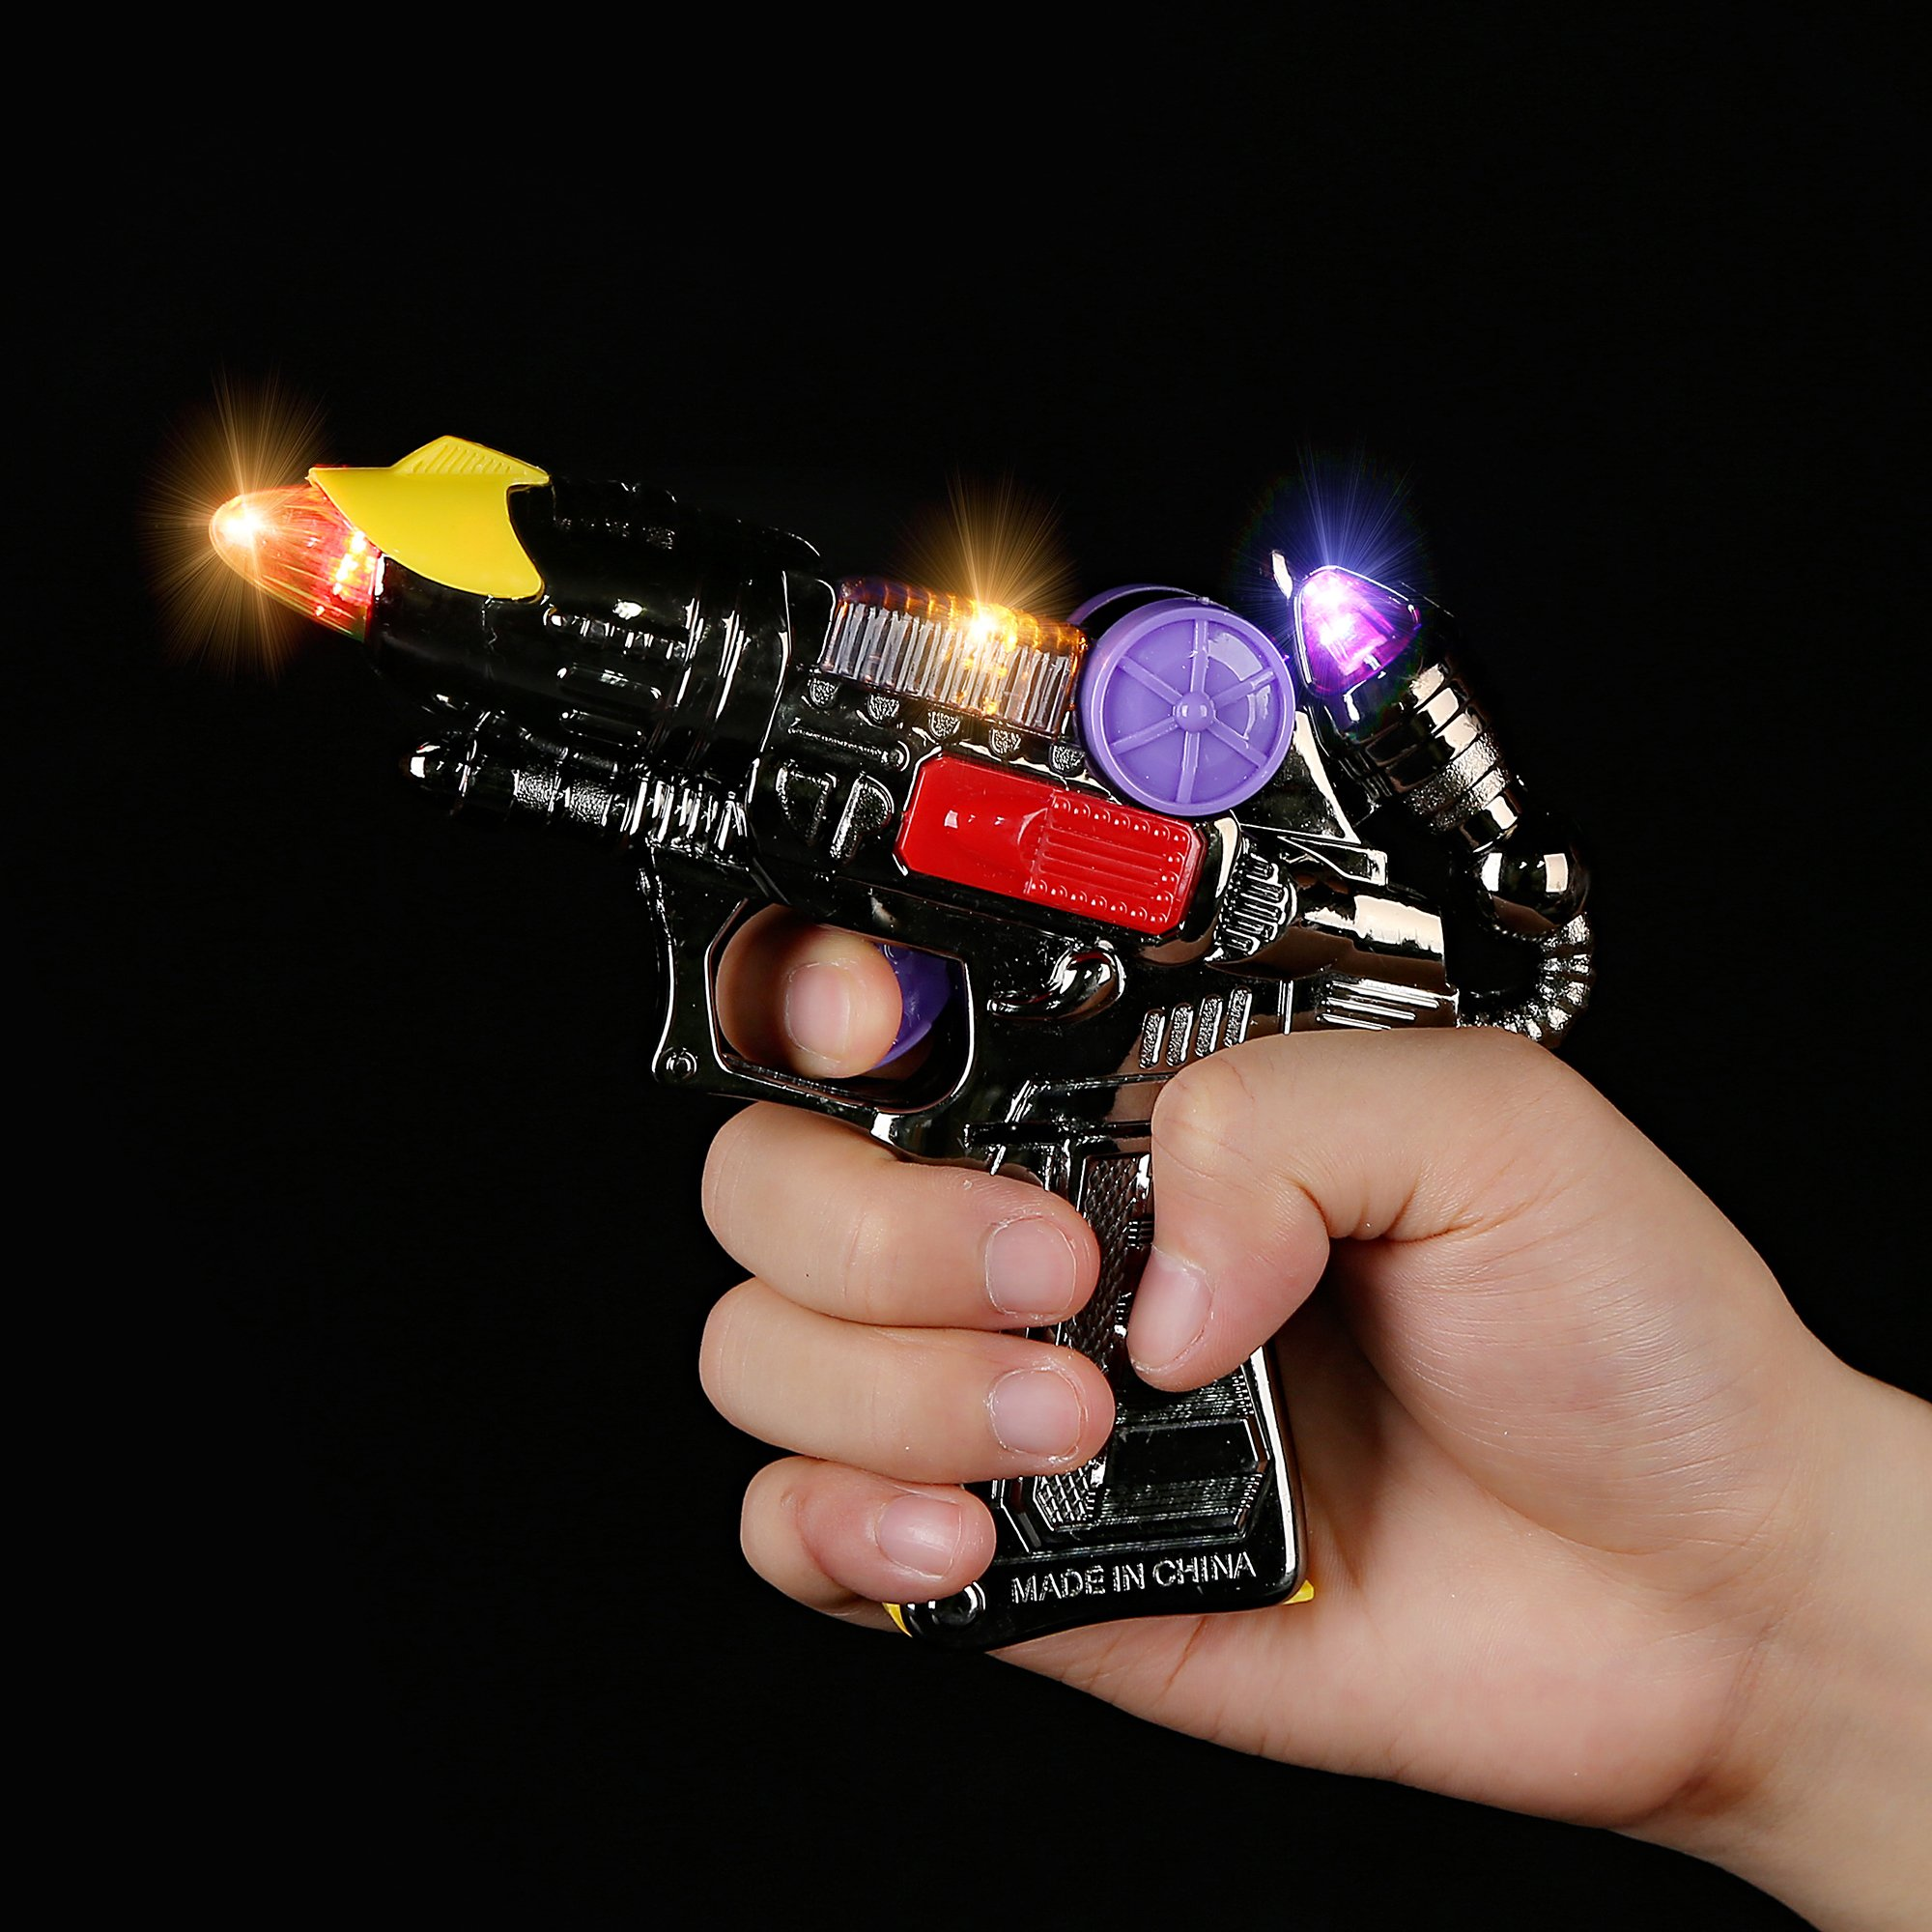 Fun Central AI267, 6 Pieces 5 Inches LED Light Up Mini Blaster Gun with Sound, LED Light Up Toys, Mini Toy Gun with Lights, Space Blaster Gun for Role Playing Games, Kids Outdoor Games